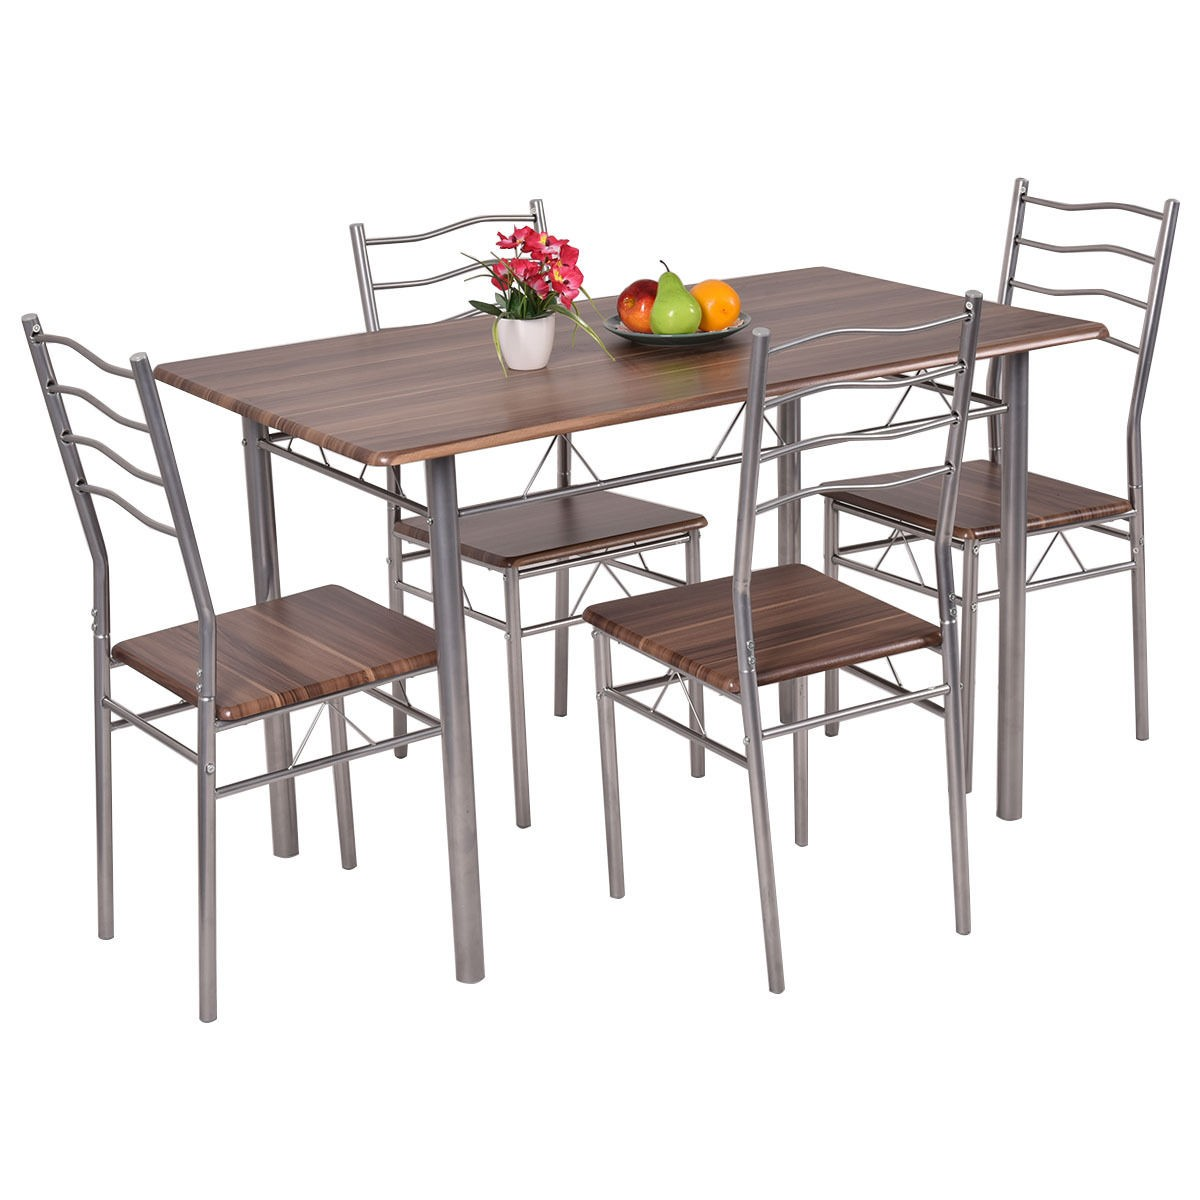 5 Piece Dining Set Wood Metal Table And 4 Chairs Kitchen Modern Furniture Us Ebay